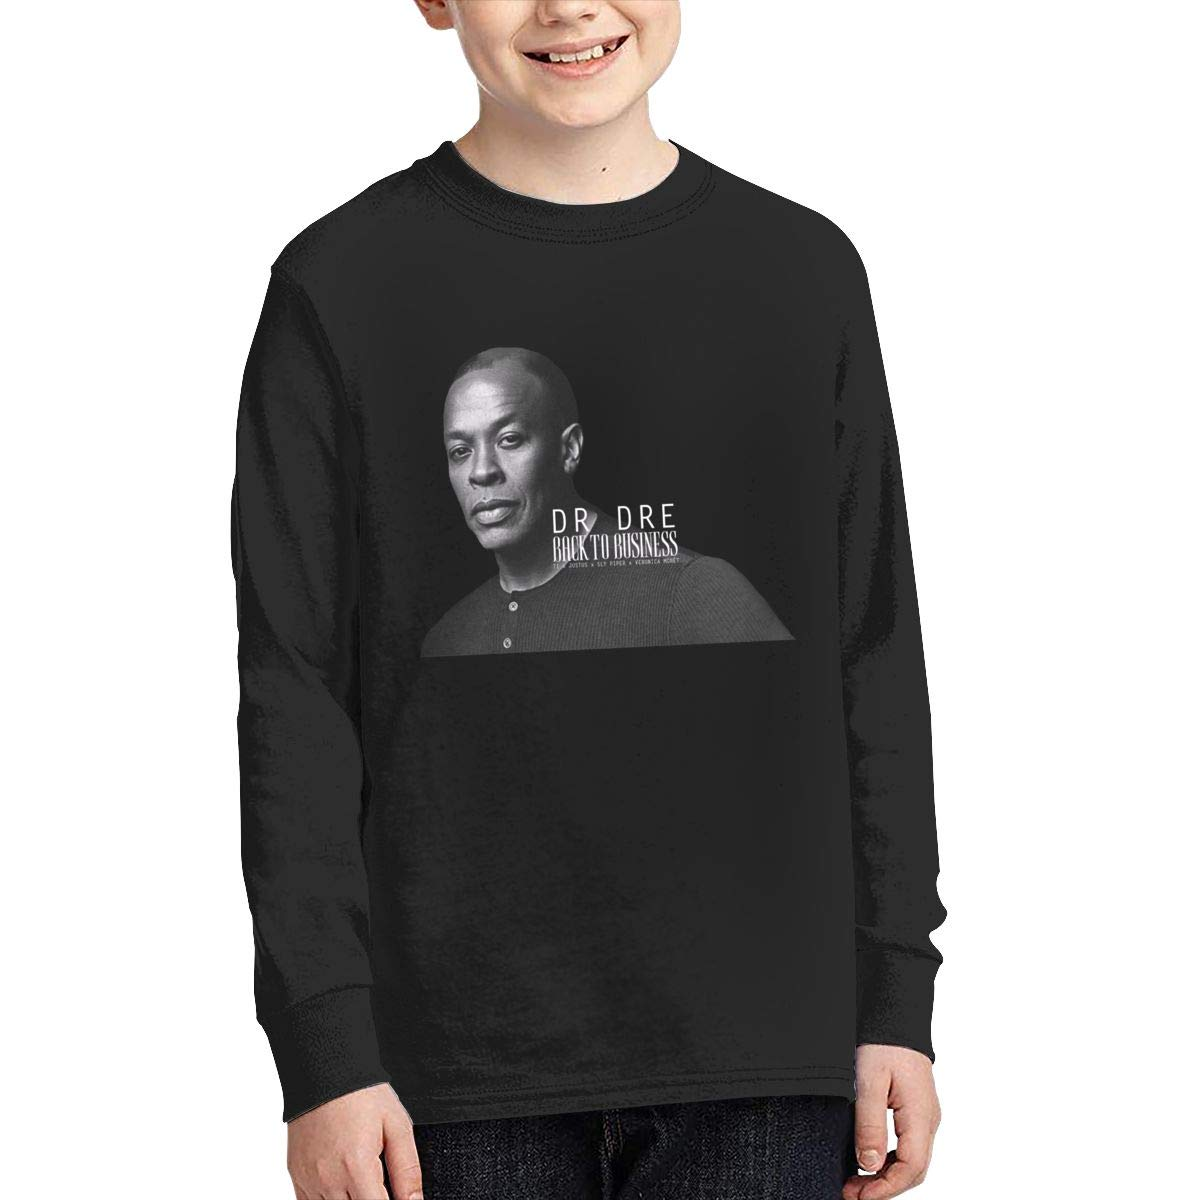 MichaelHazzard Dr DRE Youth Comfortable Long Sleeve Crewneck Tee T-Shirt for Boys and Girls